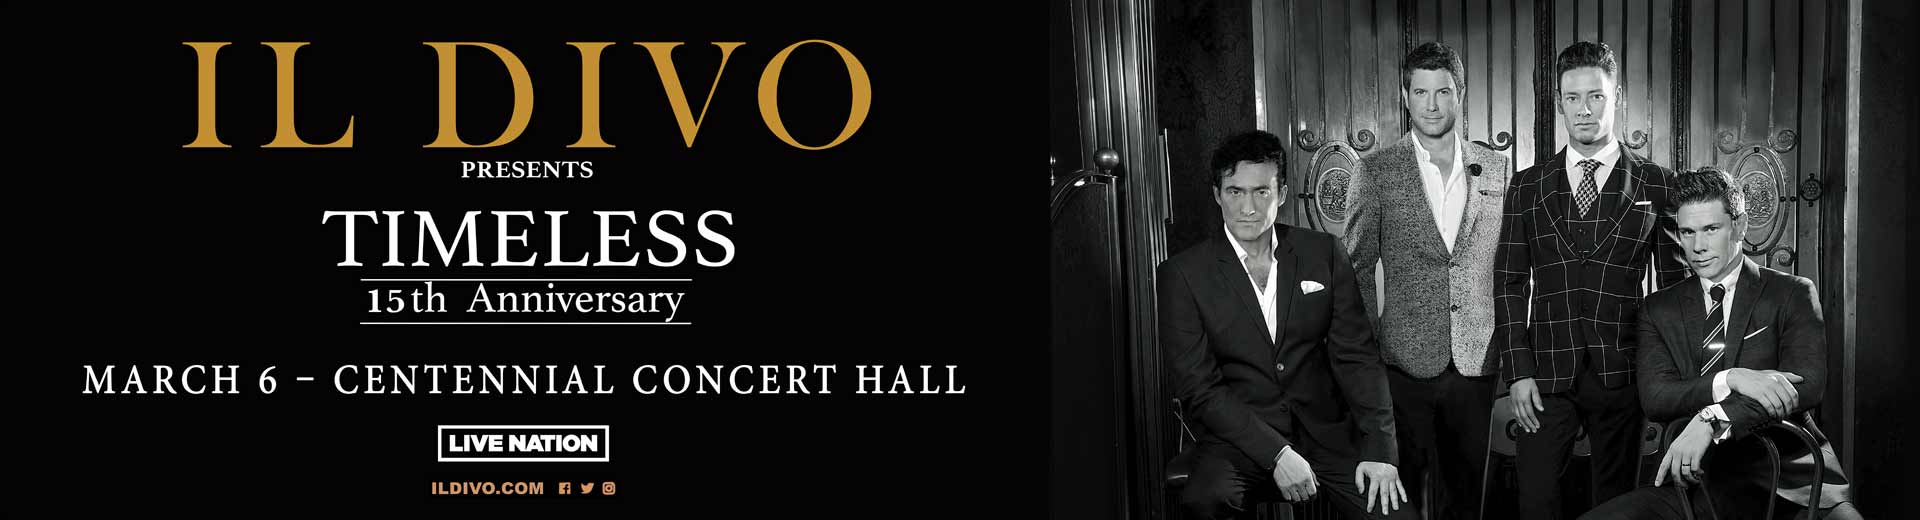 Il Divo - Centennial Concert Hall - March 6, 2019